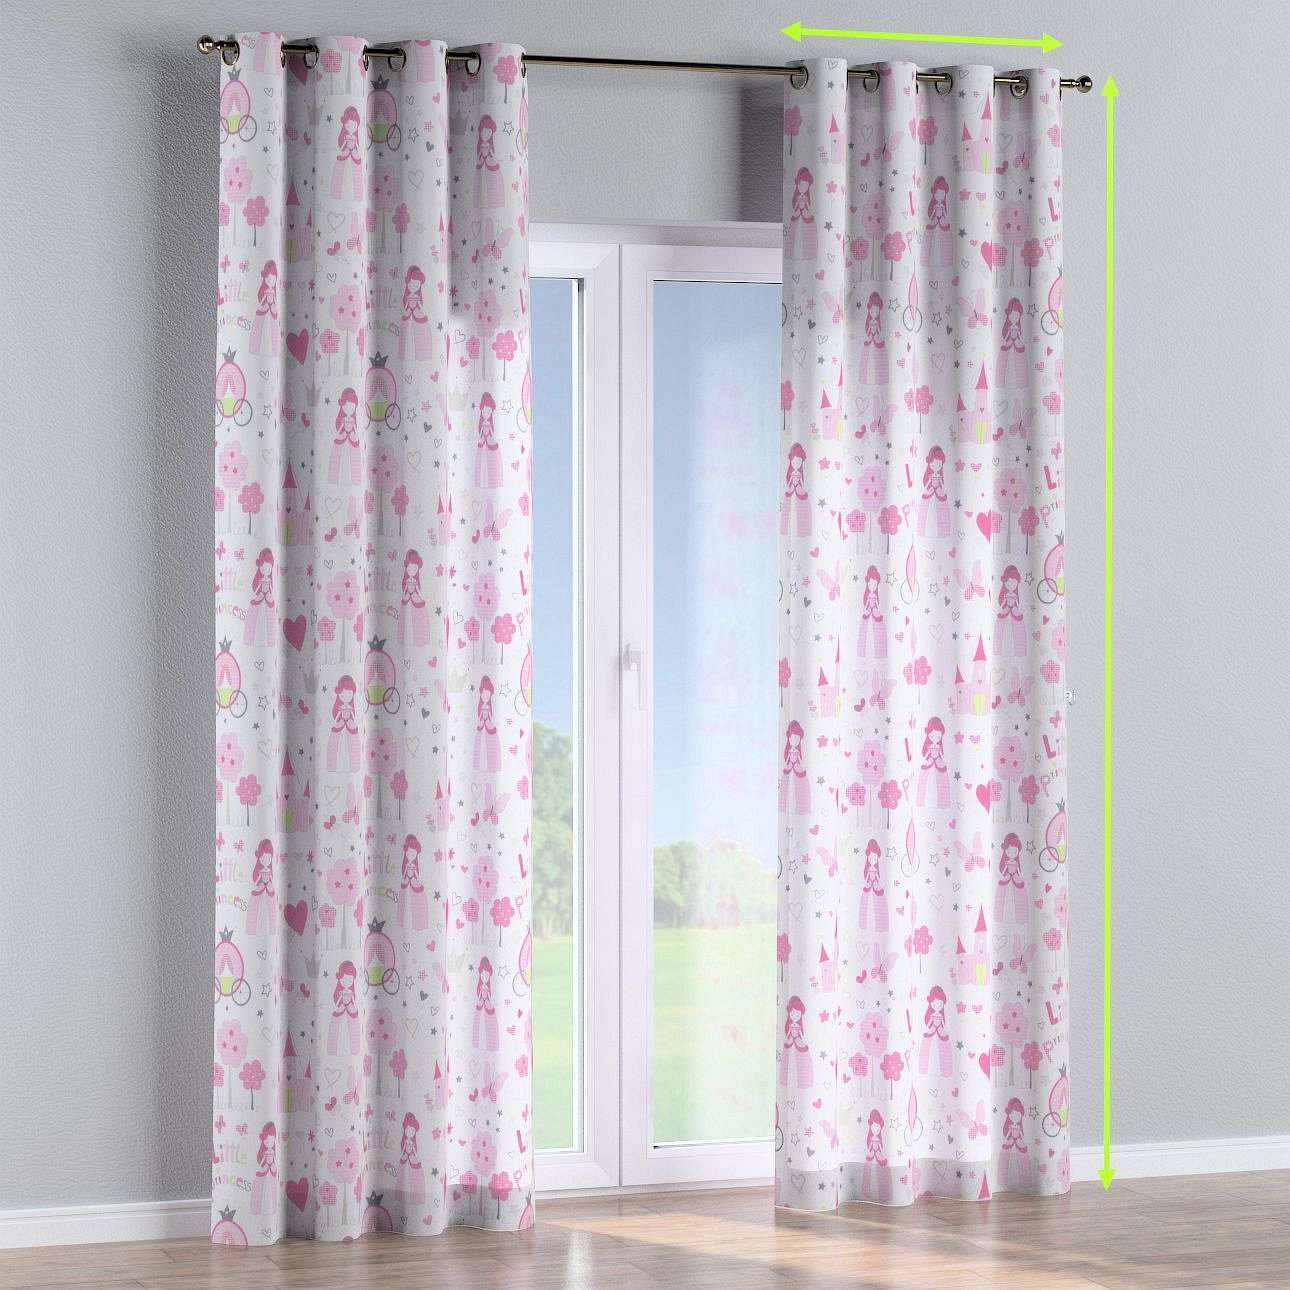 Eyelet lined curtains in collection Little World, fabric: 141-28